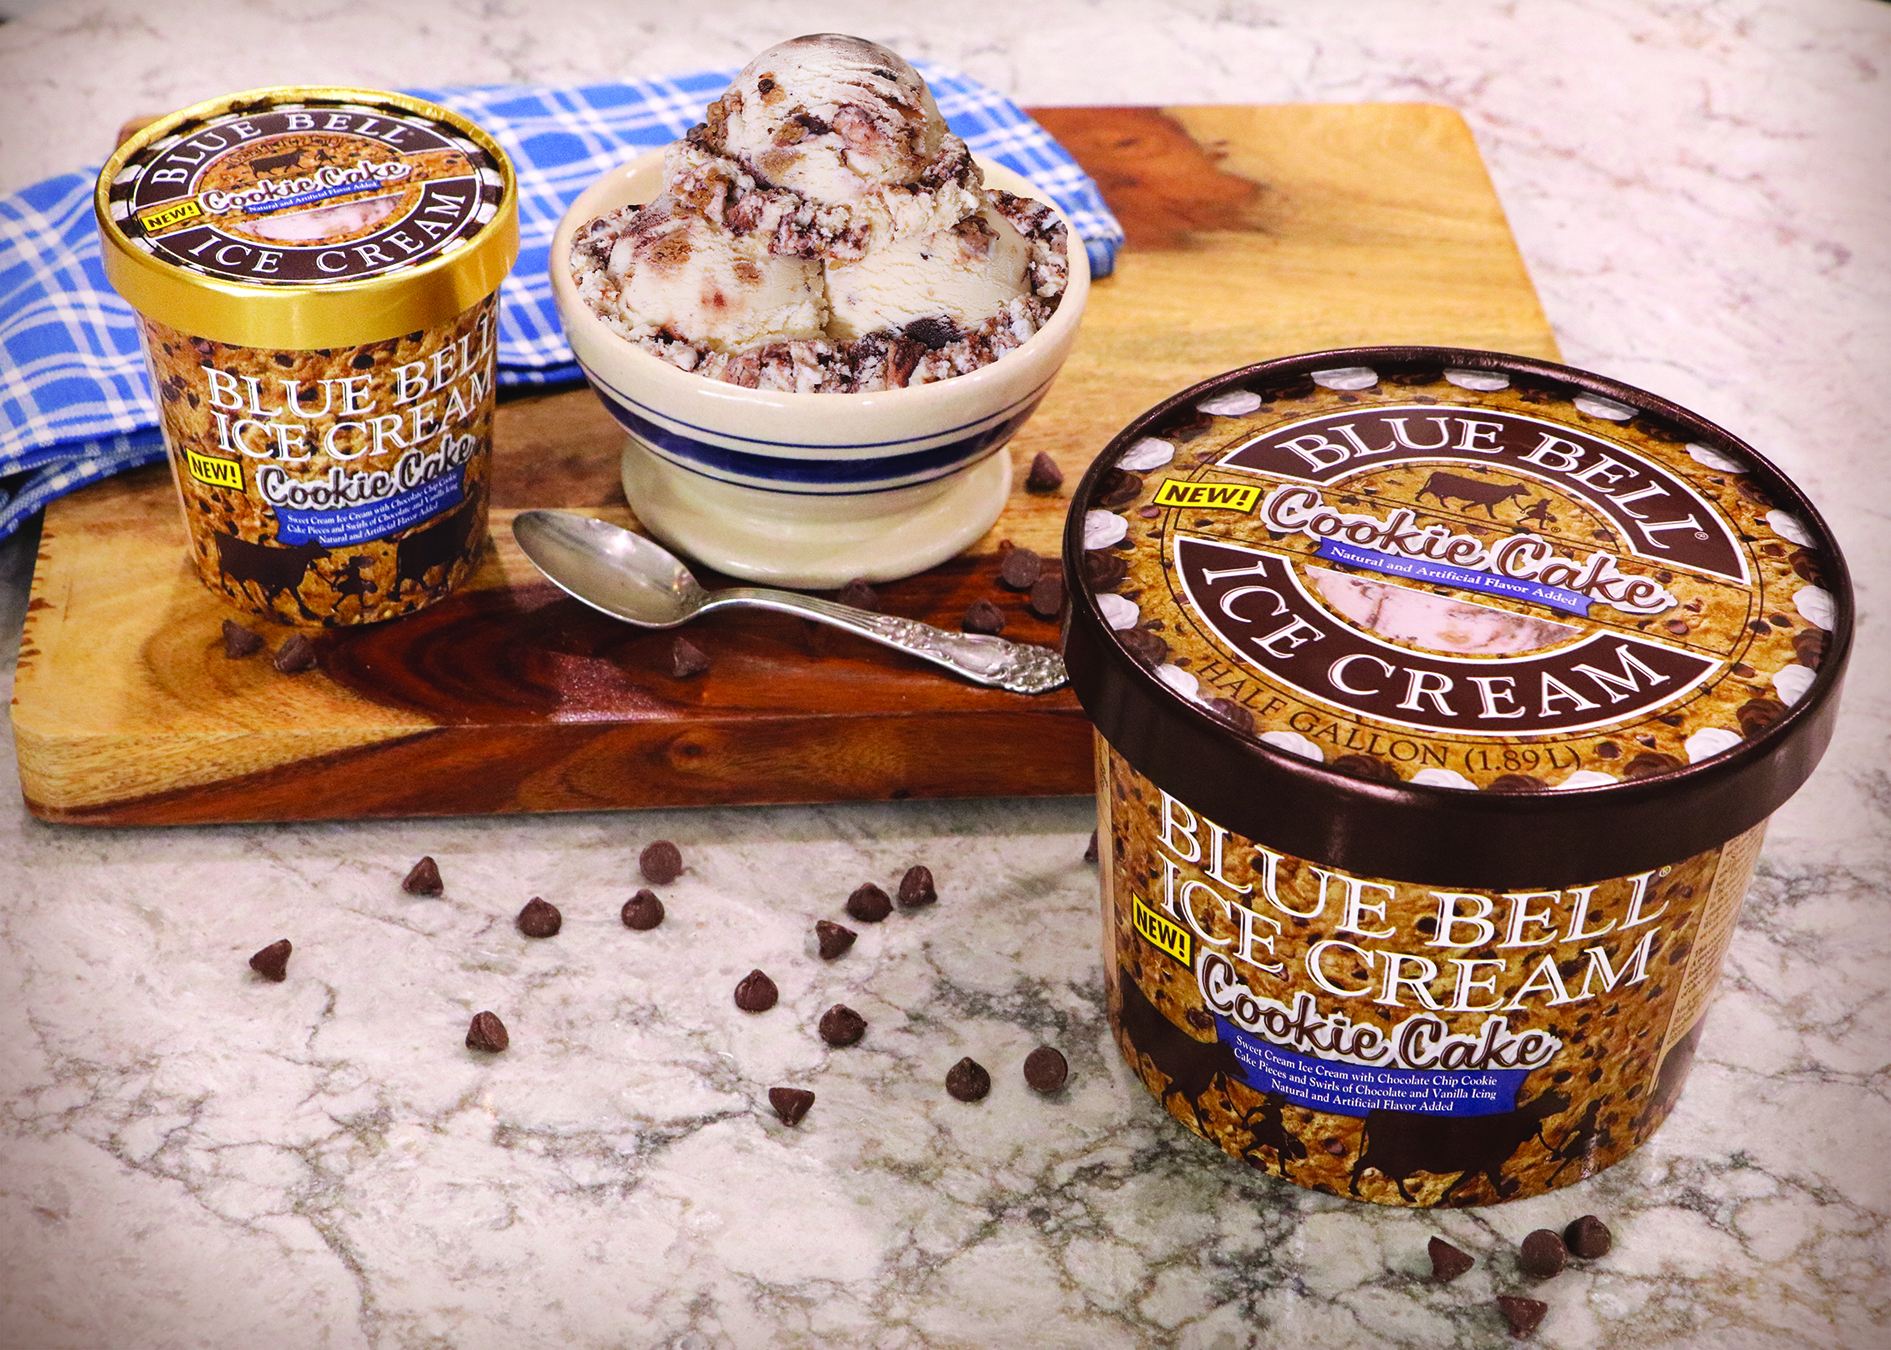 Hold the Phone: Blue Bell's Newest Ice Cream Flavor Has Chunks of Chocolate Chip Cookies